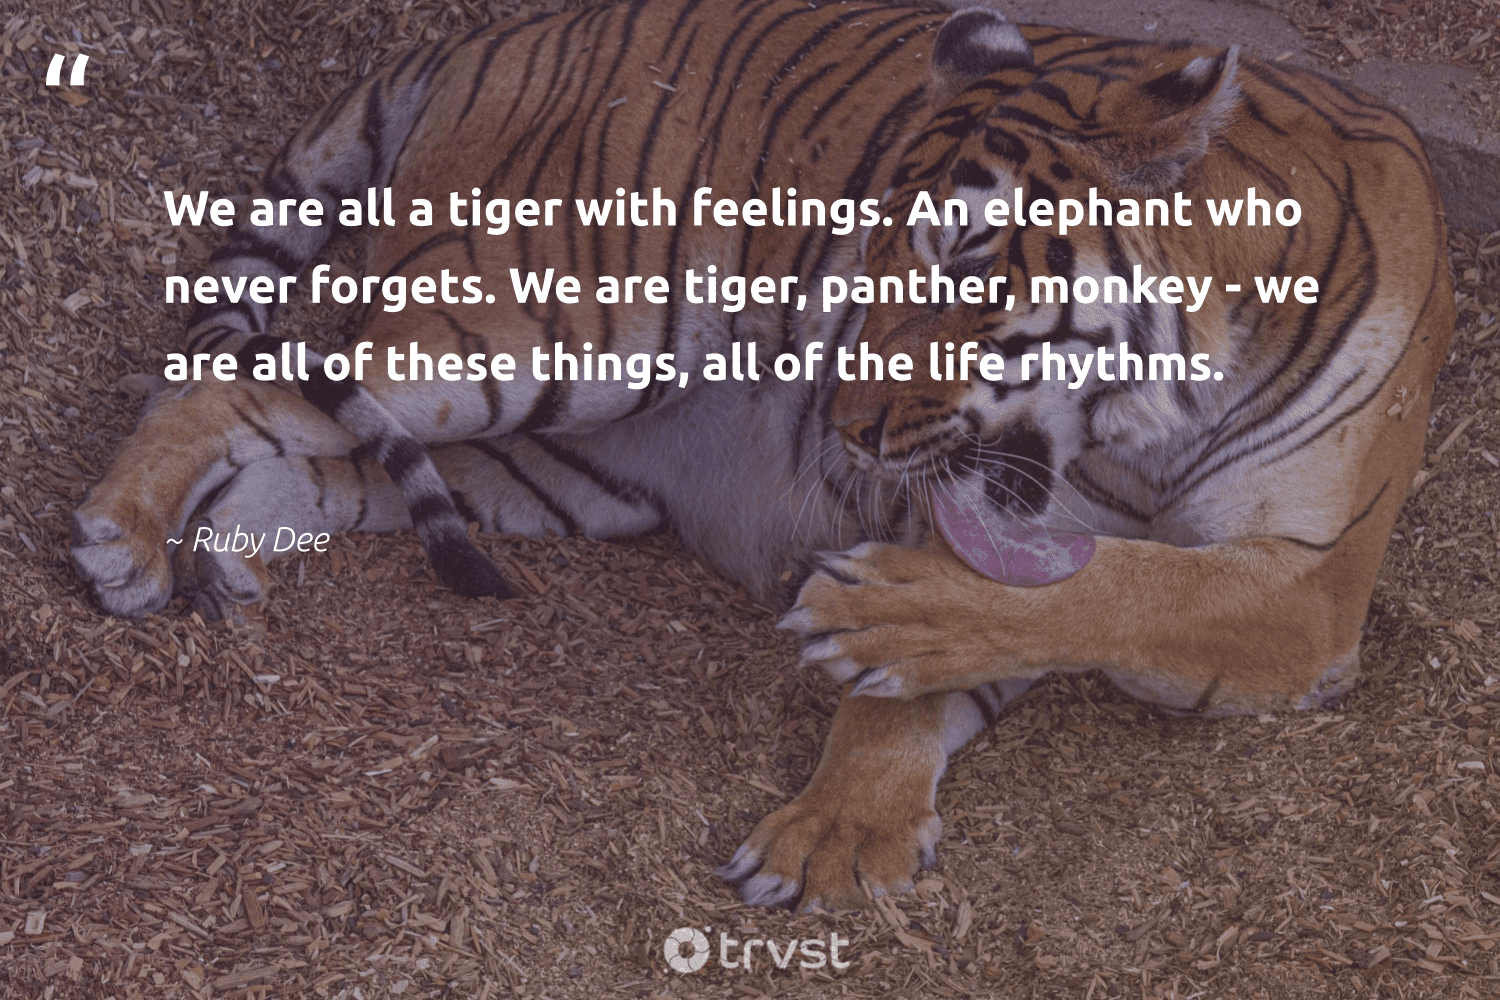 """""""We are all a tiger with feelings. An elephant who never forgets. We are tiger, panther, monkey - we are all of these things, all of the life rhythms.""""  - Ruby Dee #trvst #quotes #tiger #monkey #animalphotography #takeaction #conservation #gogreen #biodiversity #planetearthfirst #sustainability #changetheworld"""